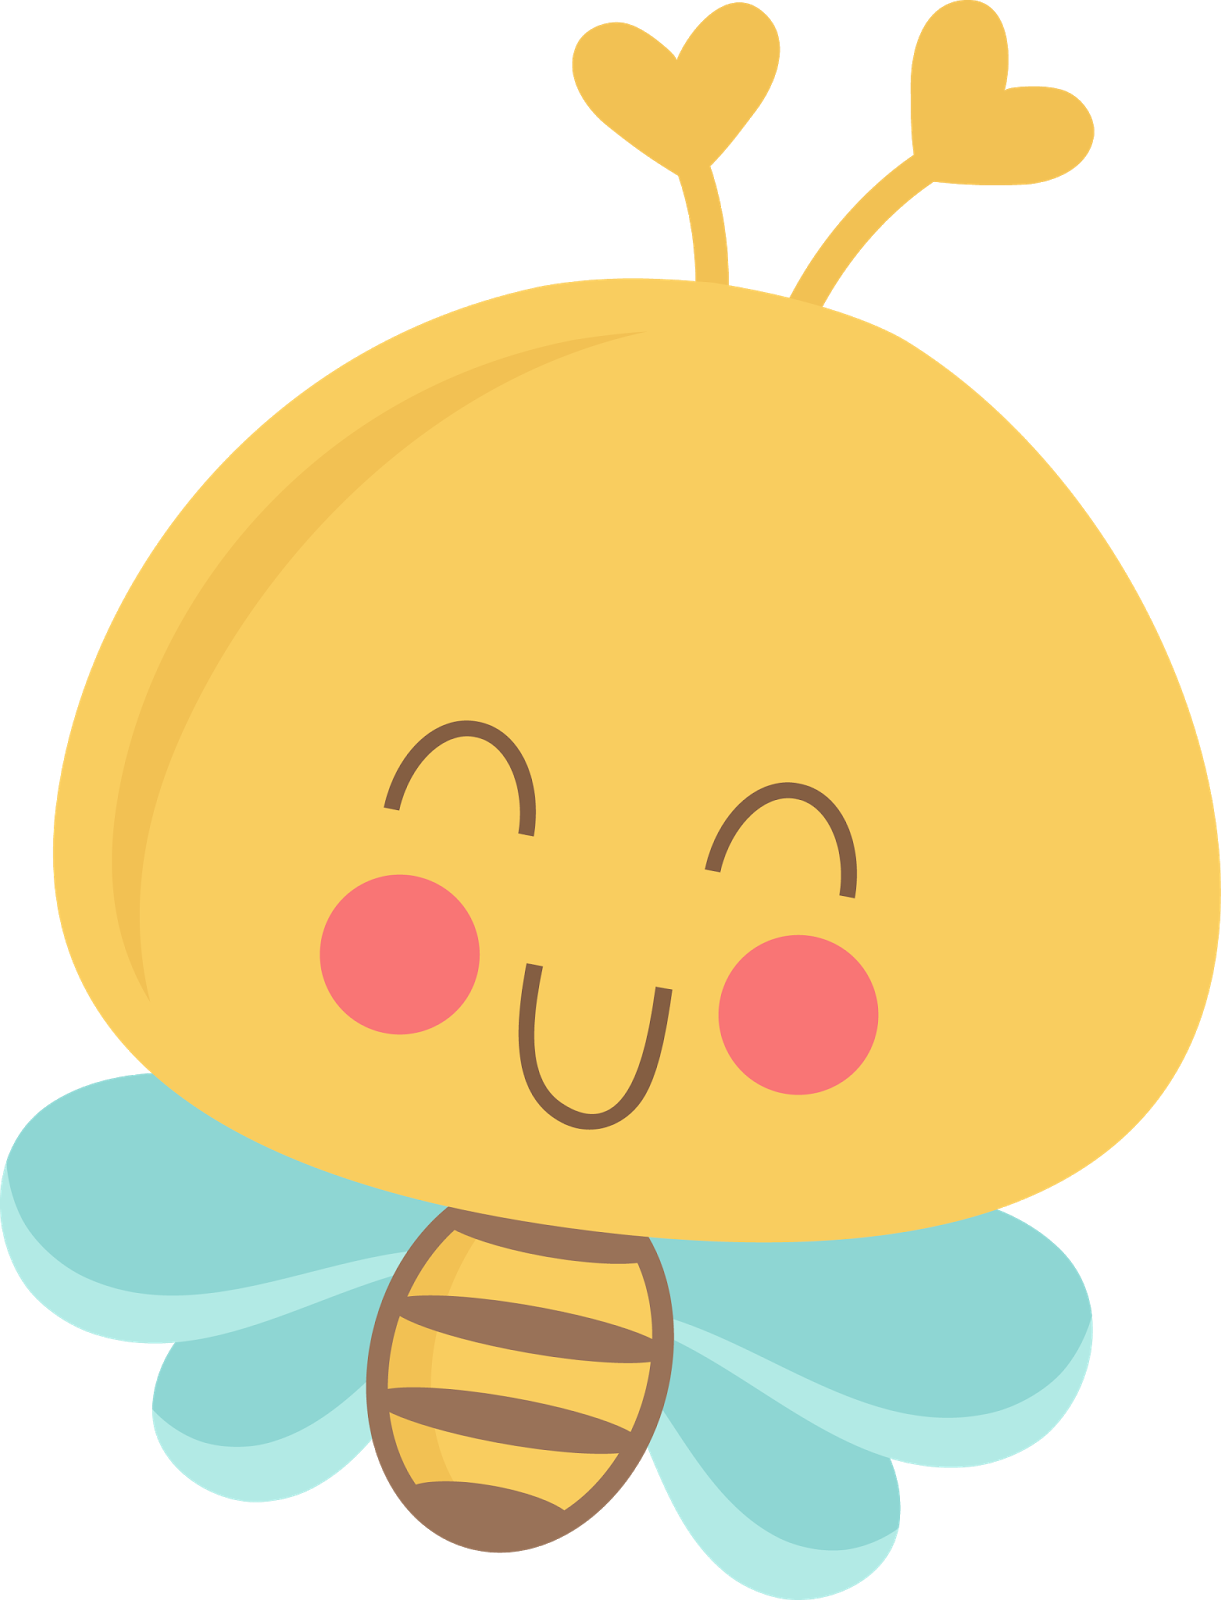 Miss kate apple clipart png image royalty free library Bee Cute PNG Transparent Bee Cute.PNG Images. | PlusPNG image royalty free library